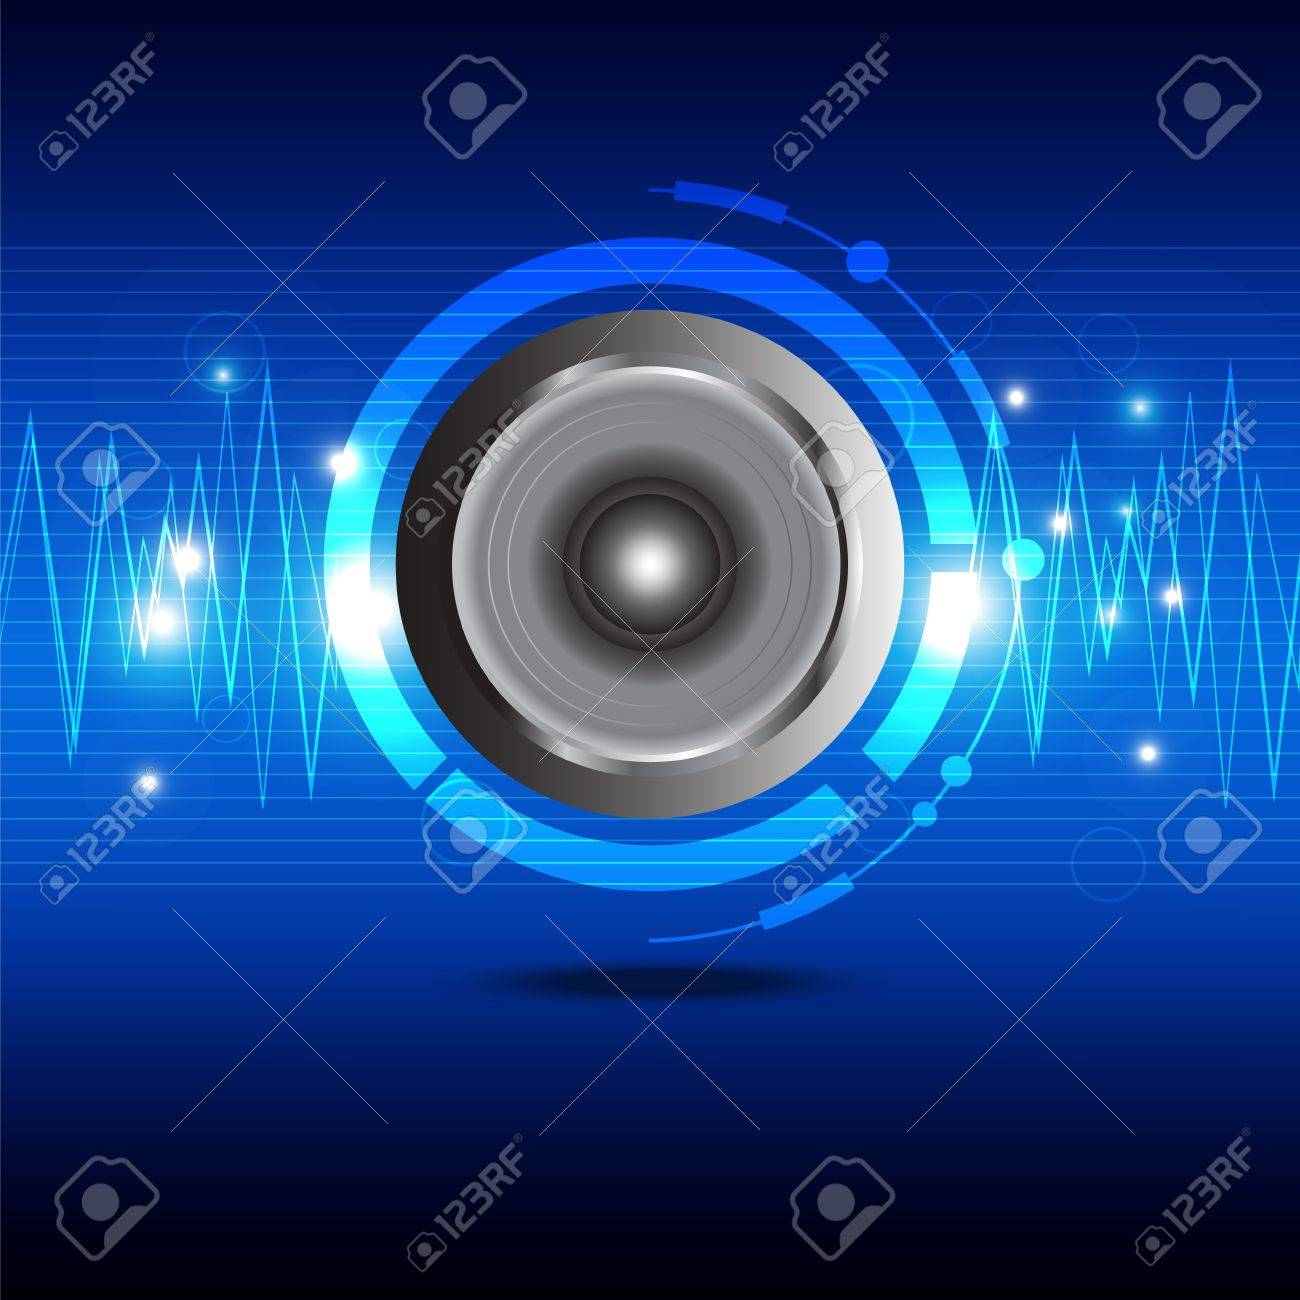 Digital Sound Wave From Speaker Royalty Free Cliparts, Vectors ...